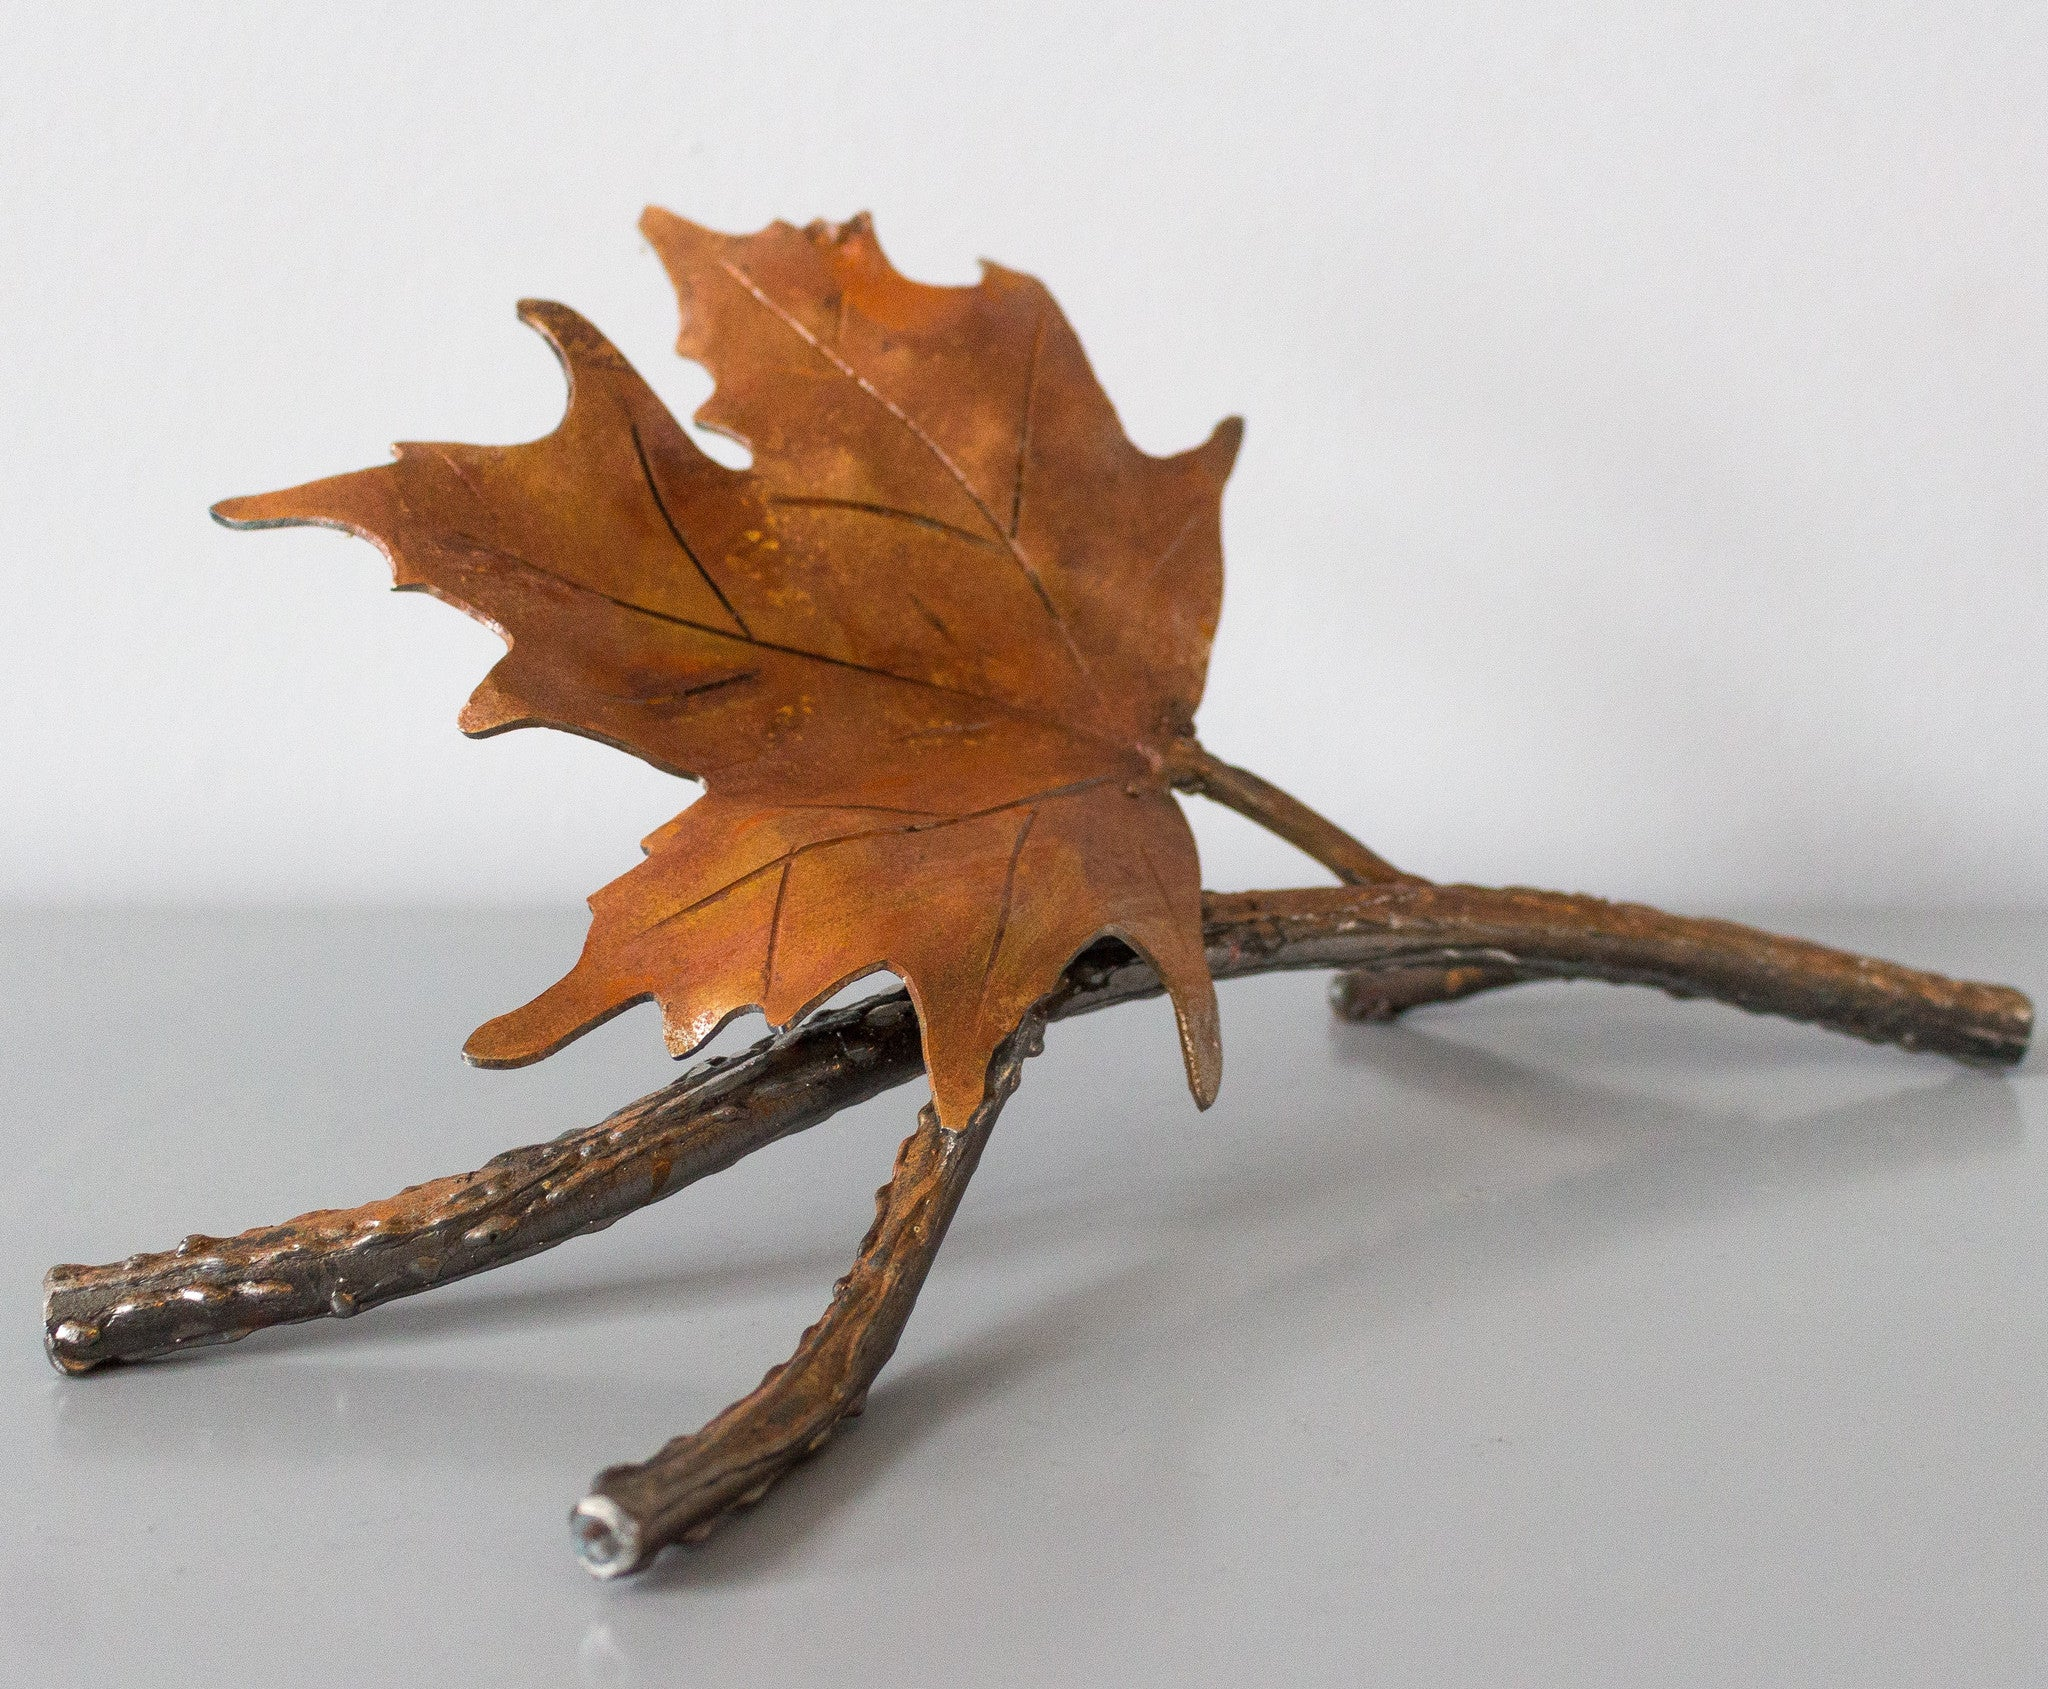 Steel Maple Leaf and Branch Sculpture for Canada's 150th